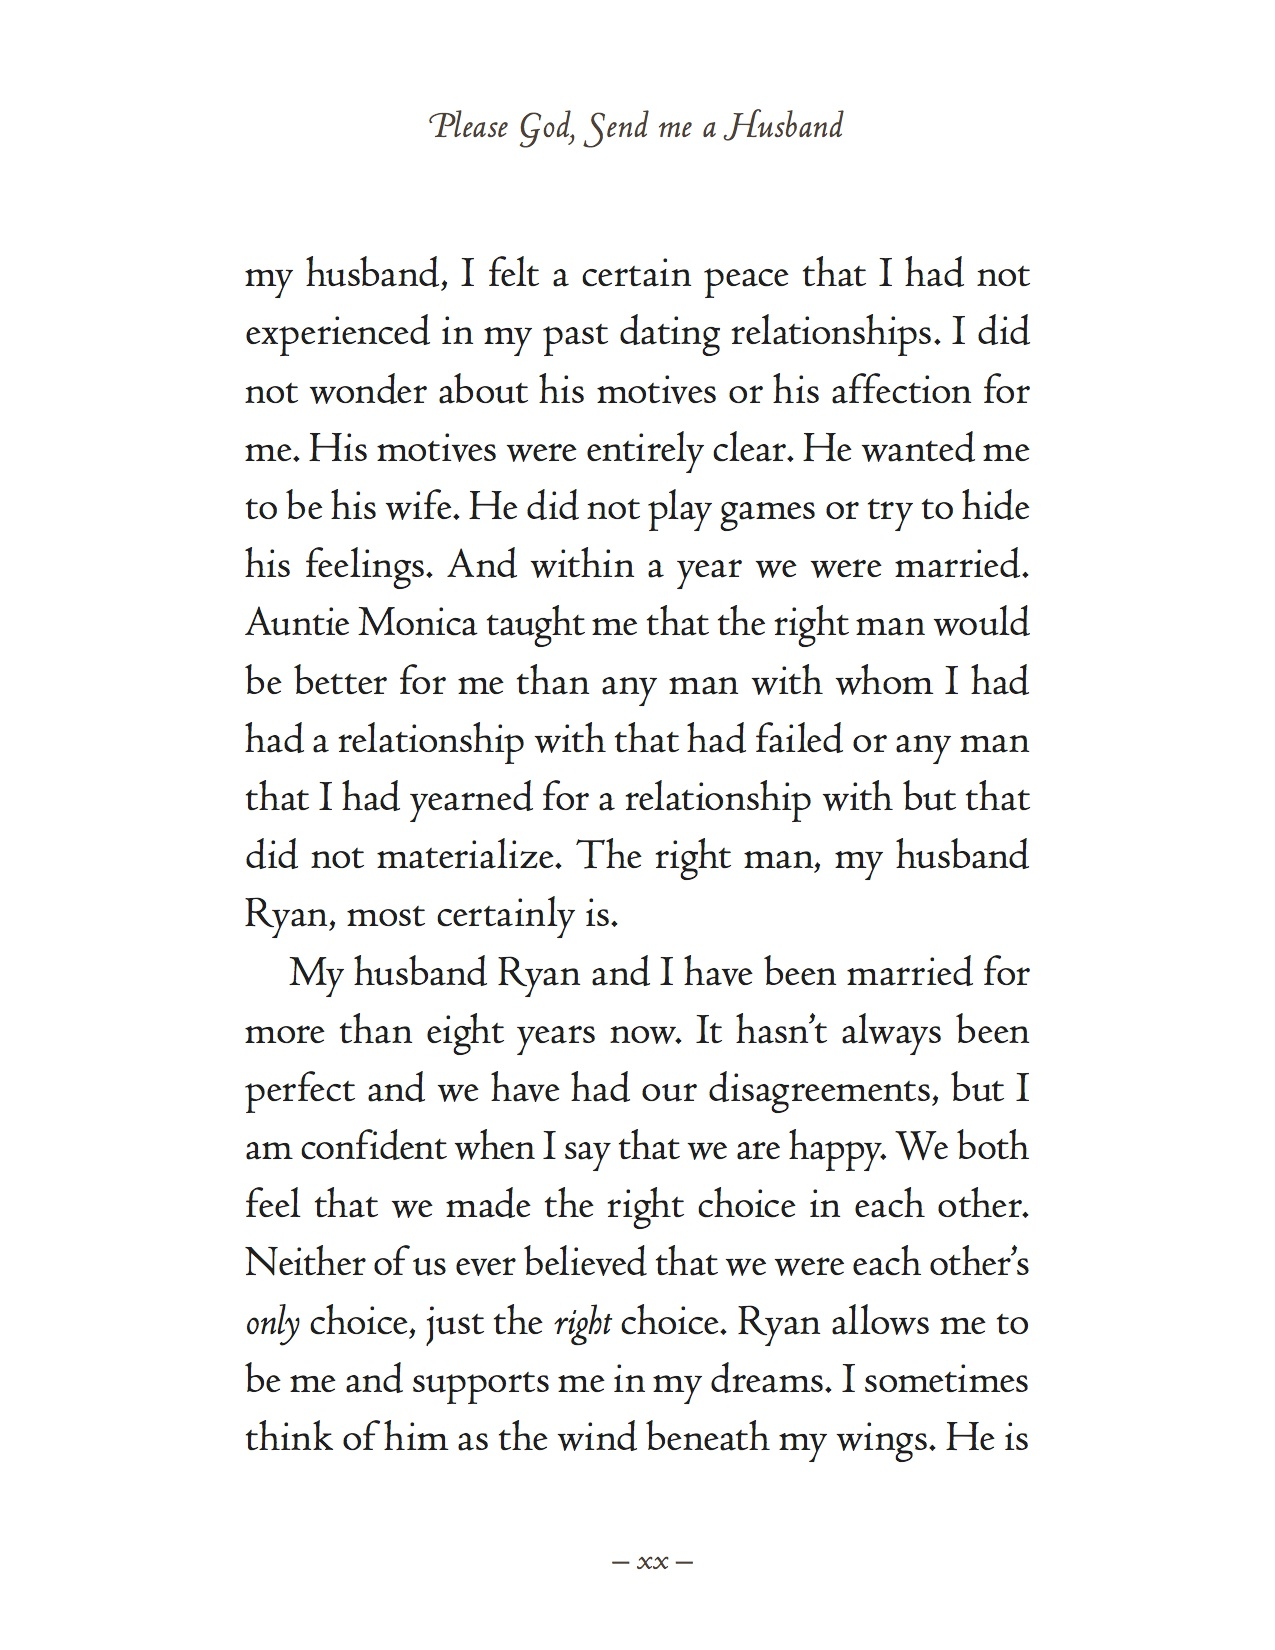 Please God Send me a husband   second part introduction Page 10.jpg